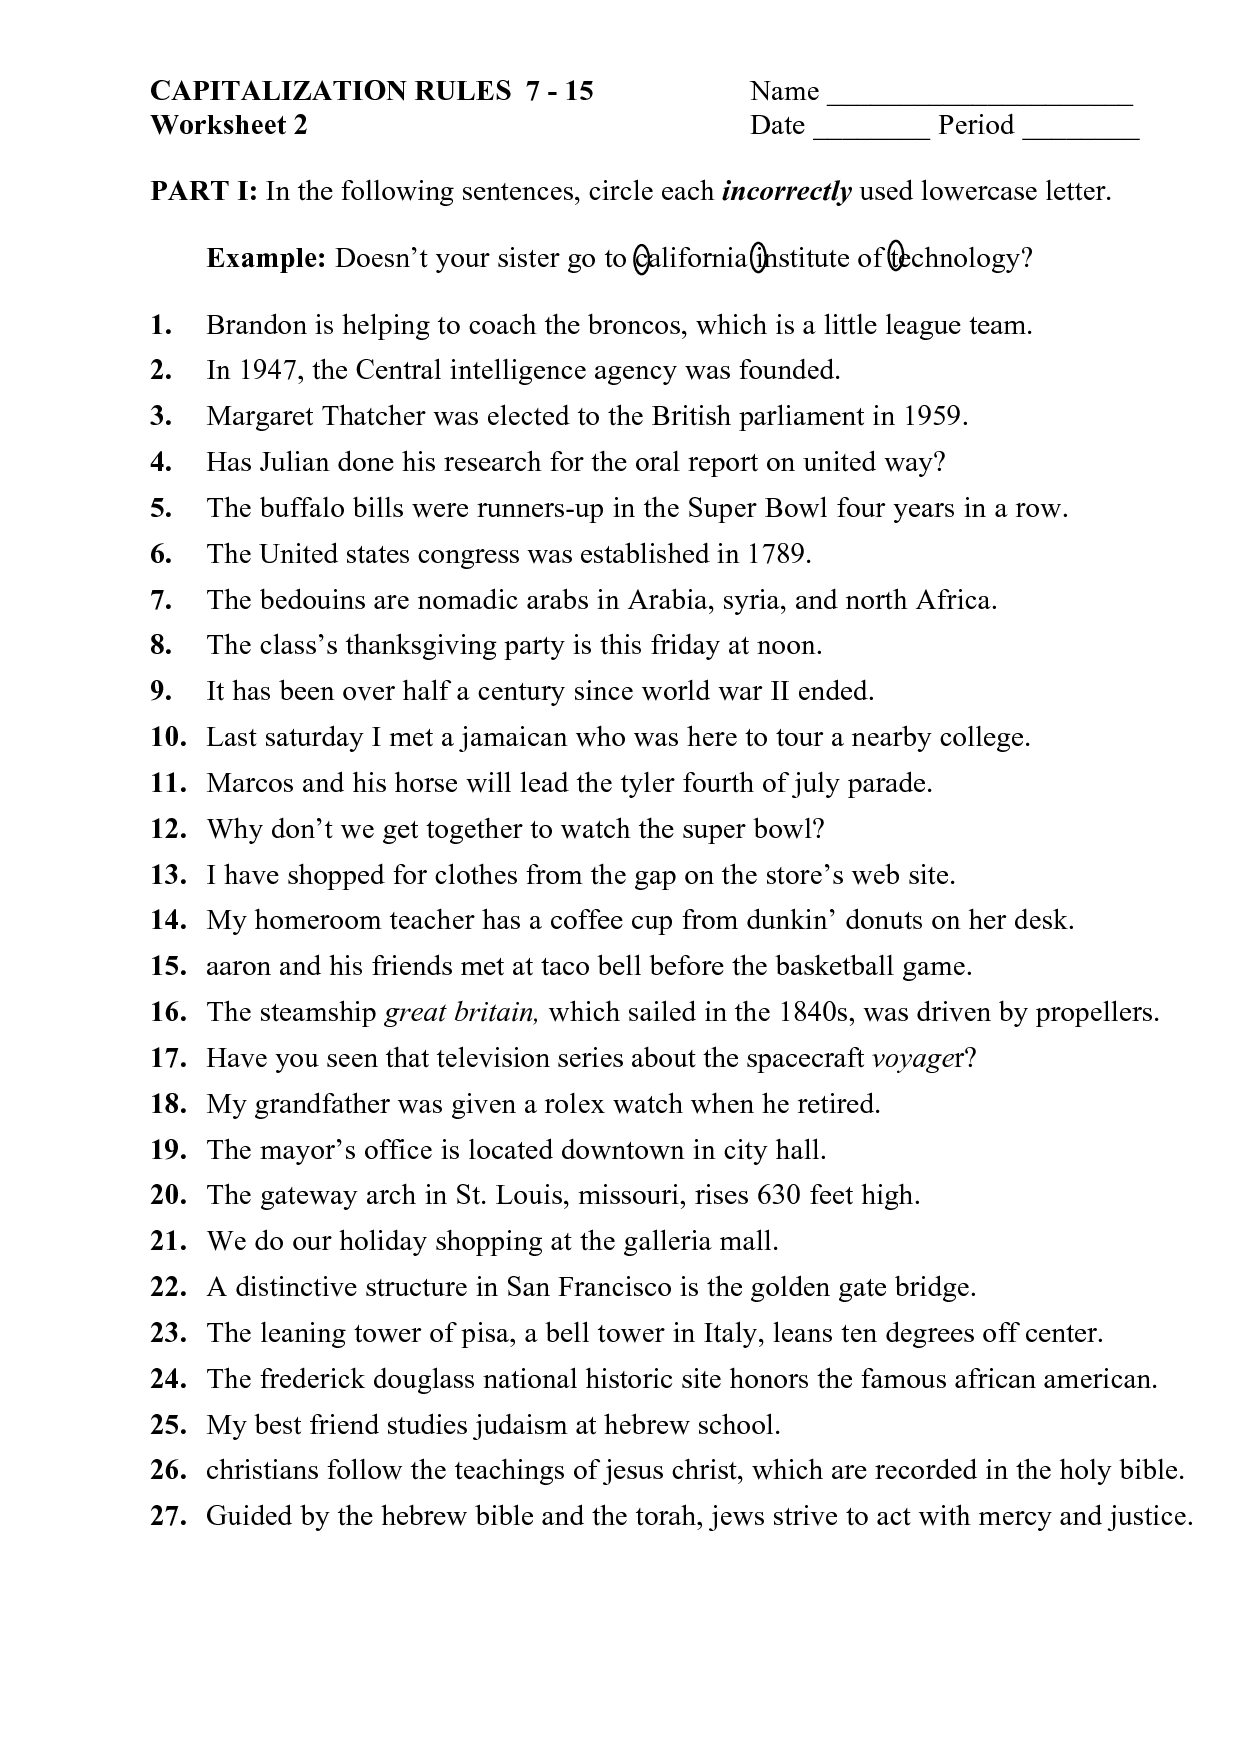 Worksheet Using Punctuation Marks